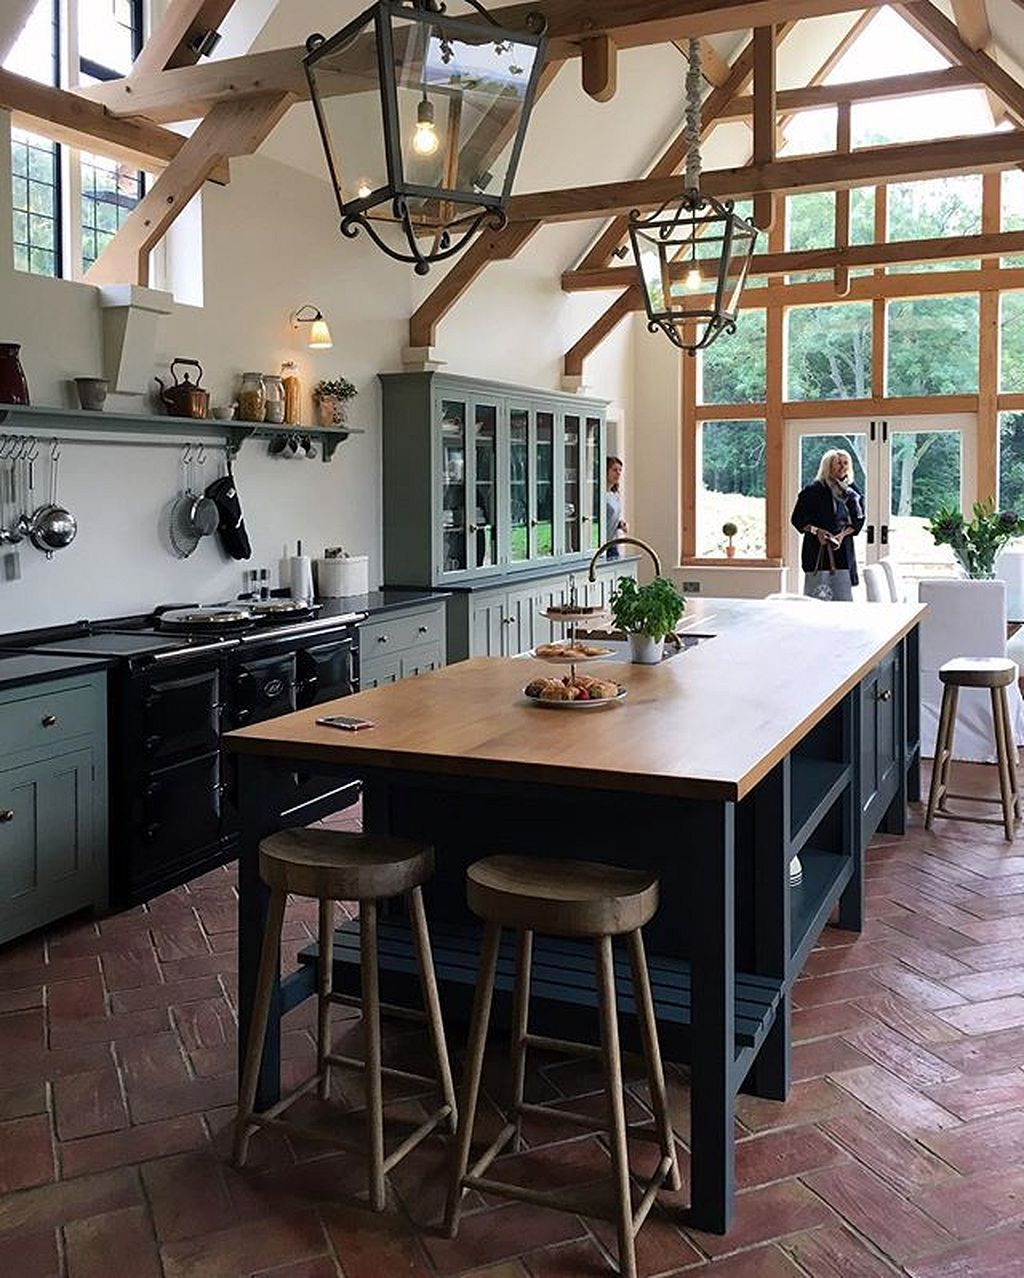 Gorgeous 60 English Country Kitchen Decor Ideas Https Kidmagz Com 60 English Country Kitchen Decor English Country Kitchens Country Kitchen Decor Sweet Home